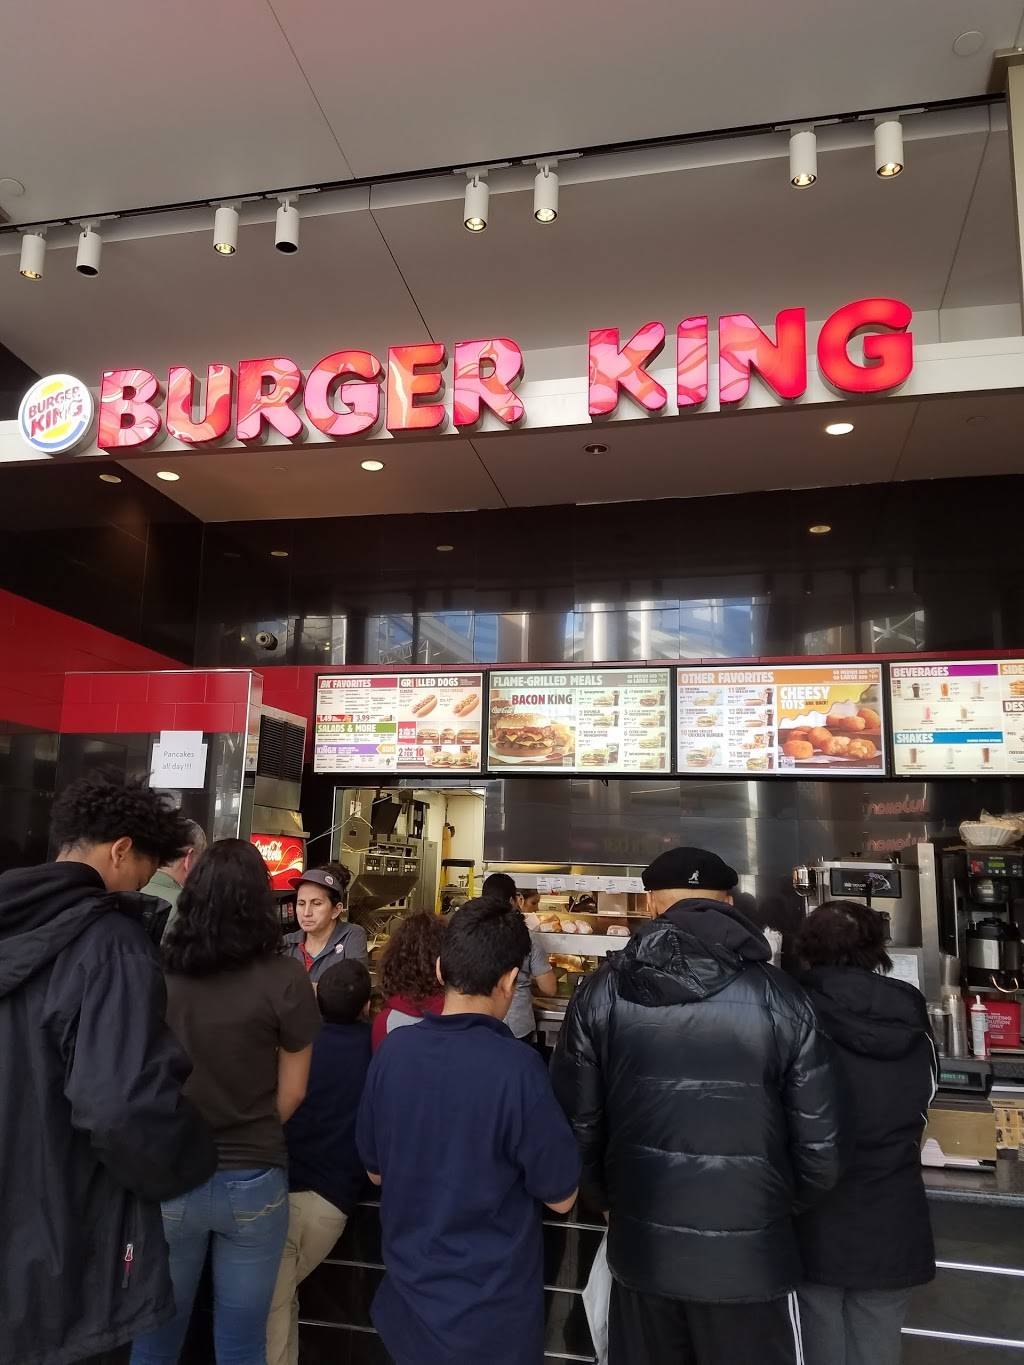 Burger King | restaurant | 30 Mall Dr W, Jersey City, NJ 07310, USA | 2016268910 OR +1 201-626-8910